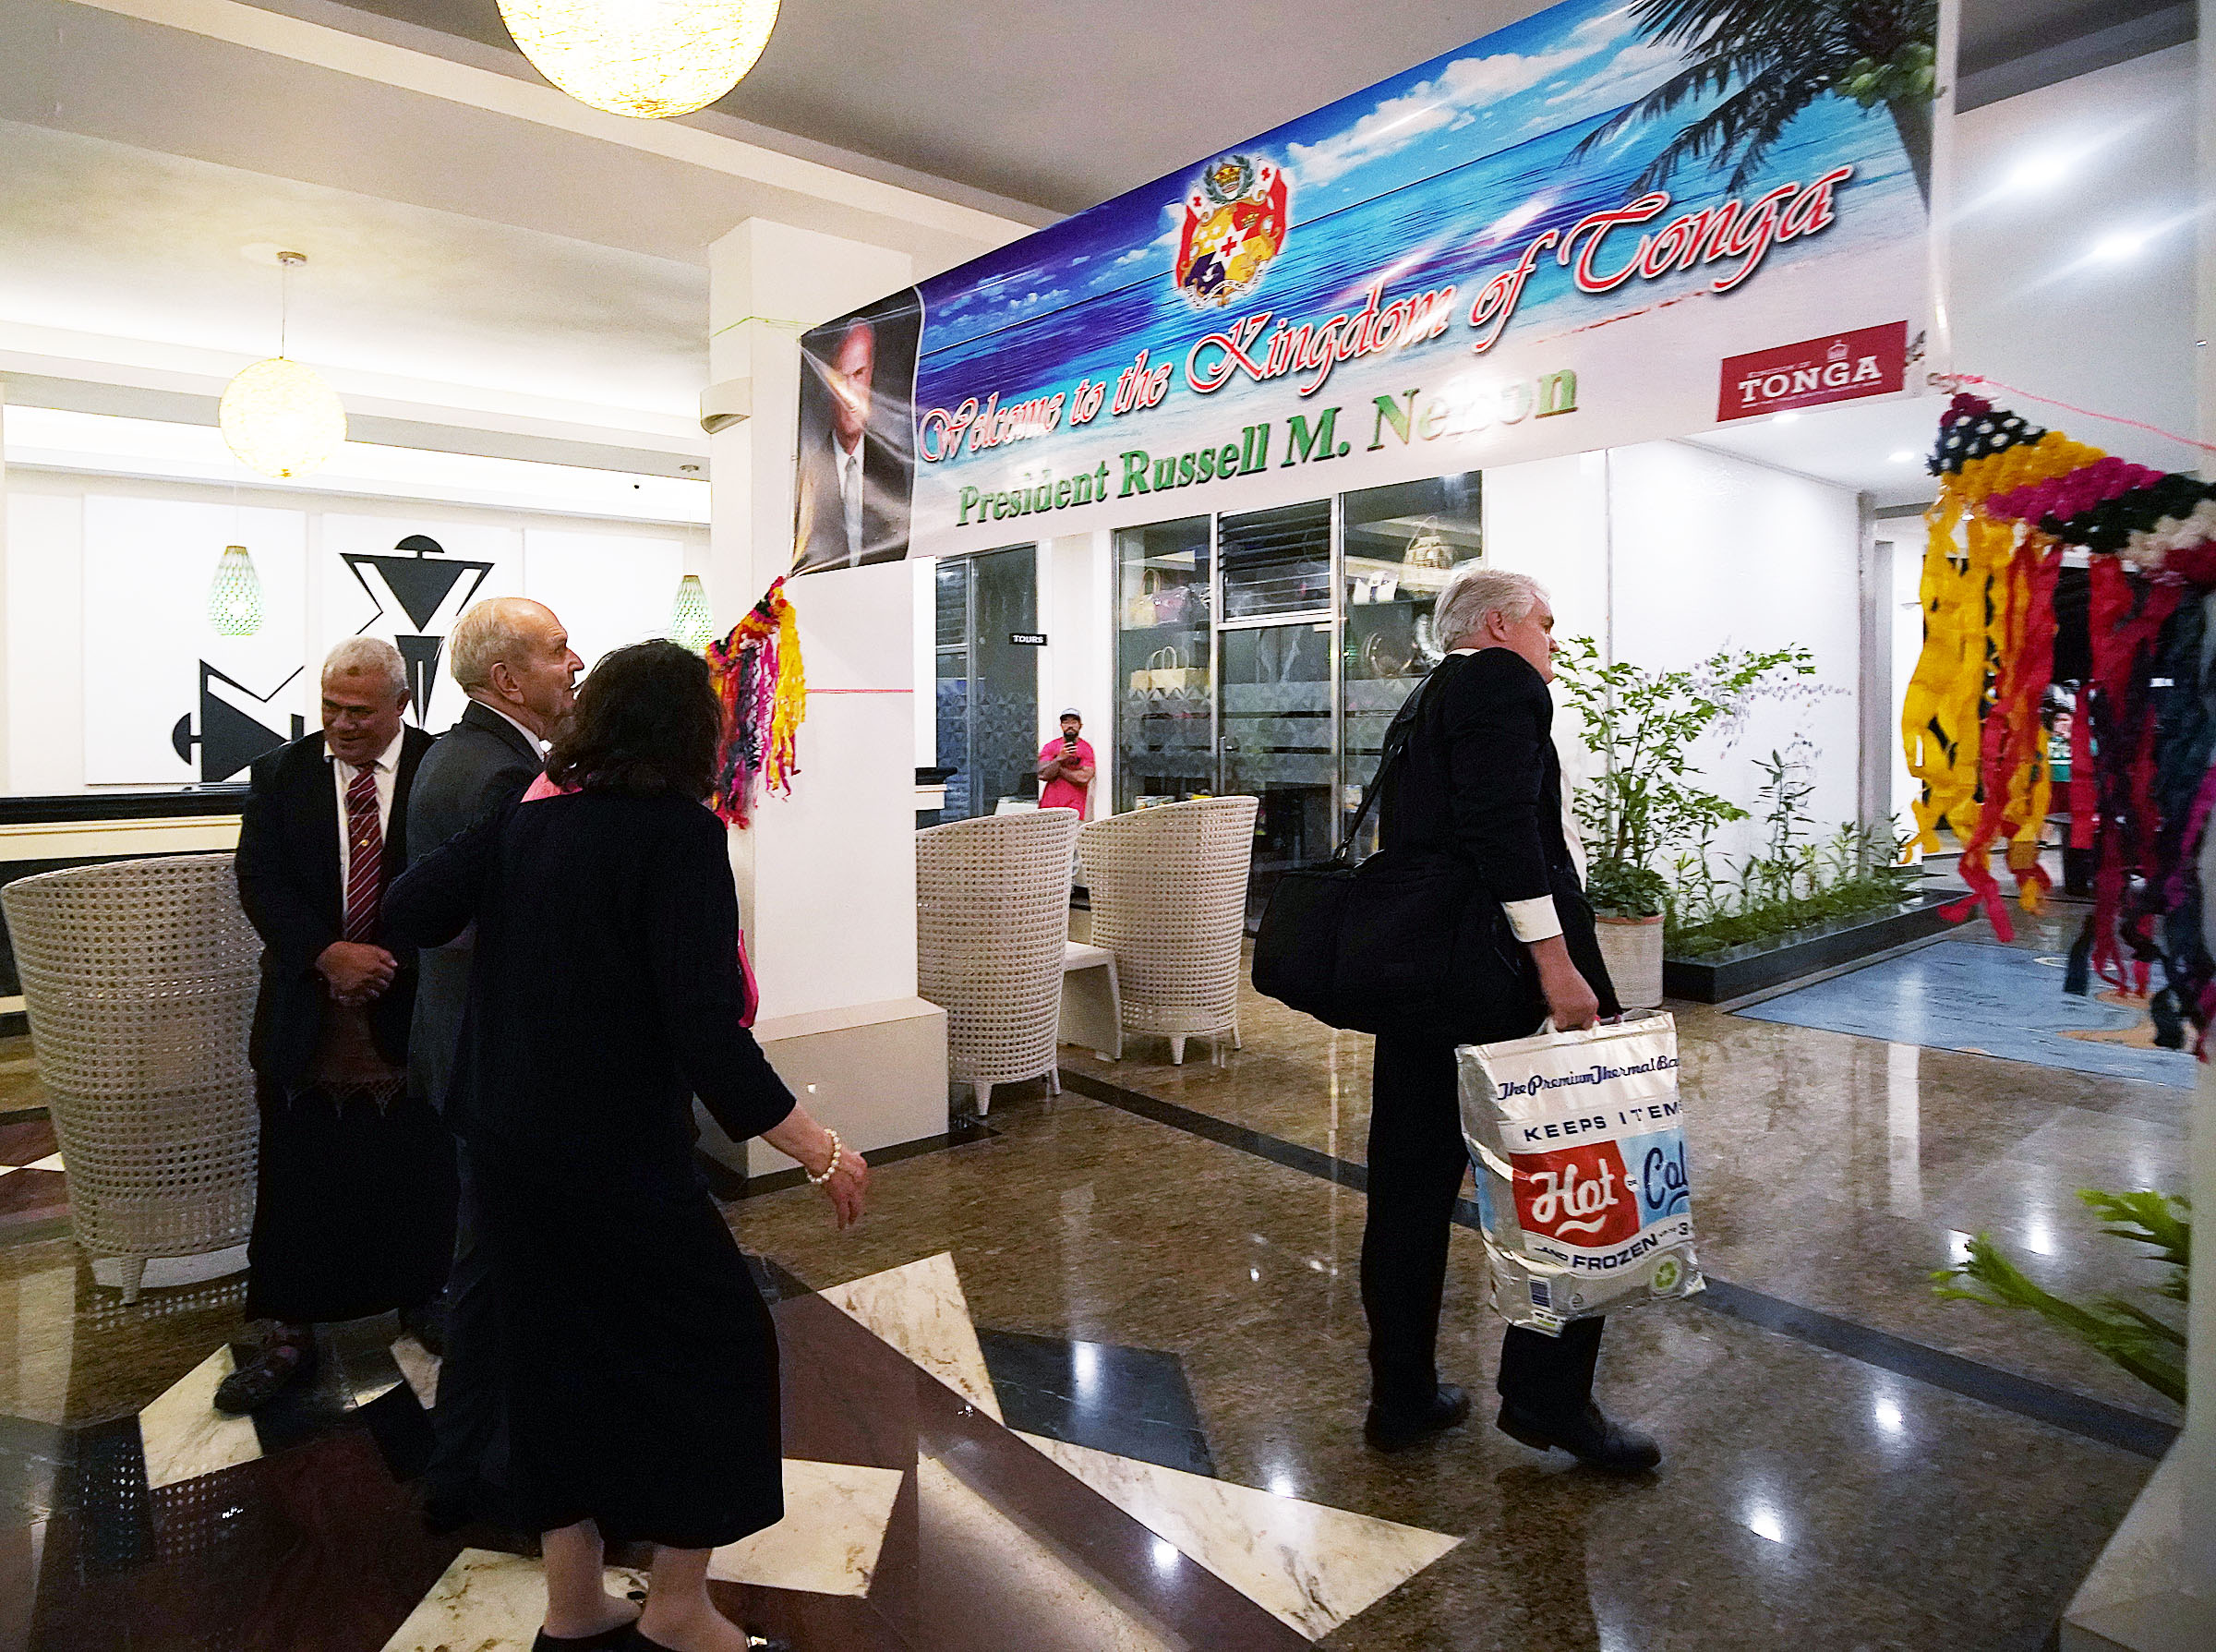 President Russell M. Nelson of The Church of Jesus Christ of Latter-day Saints, and his wife, Sister Wendy Nelson, look at a banner hung at the hotel welcoming them as they arrive in Nuku'alofa, Tonga, on Wednesday, May 22, 2019.